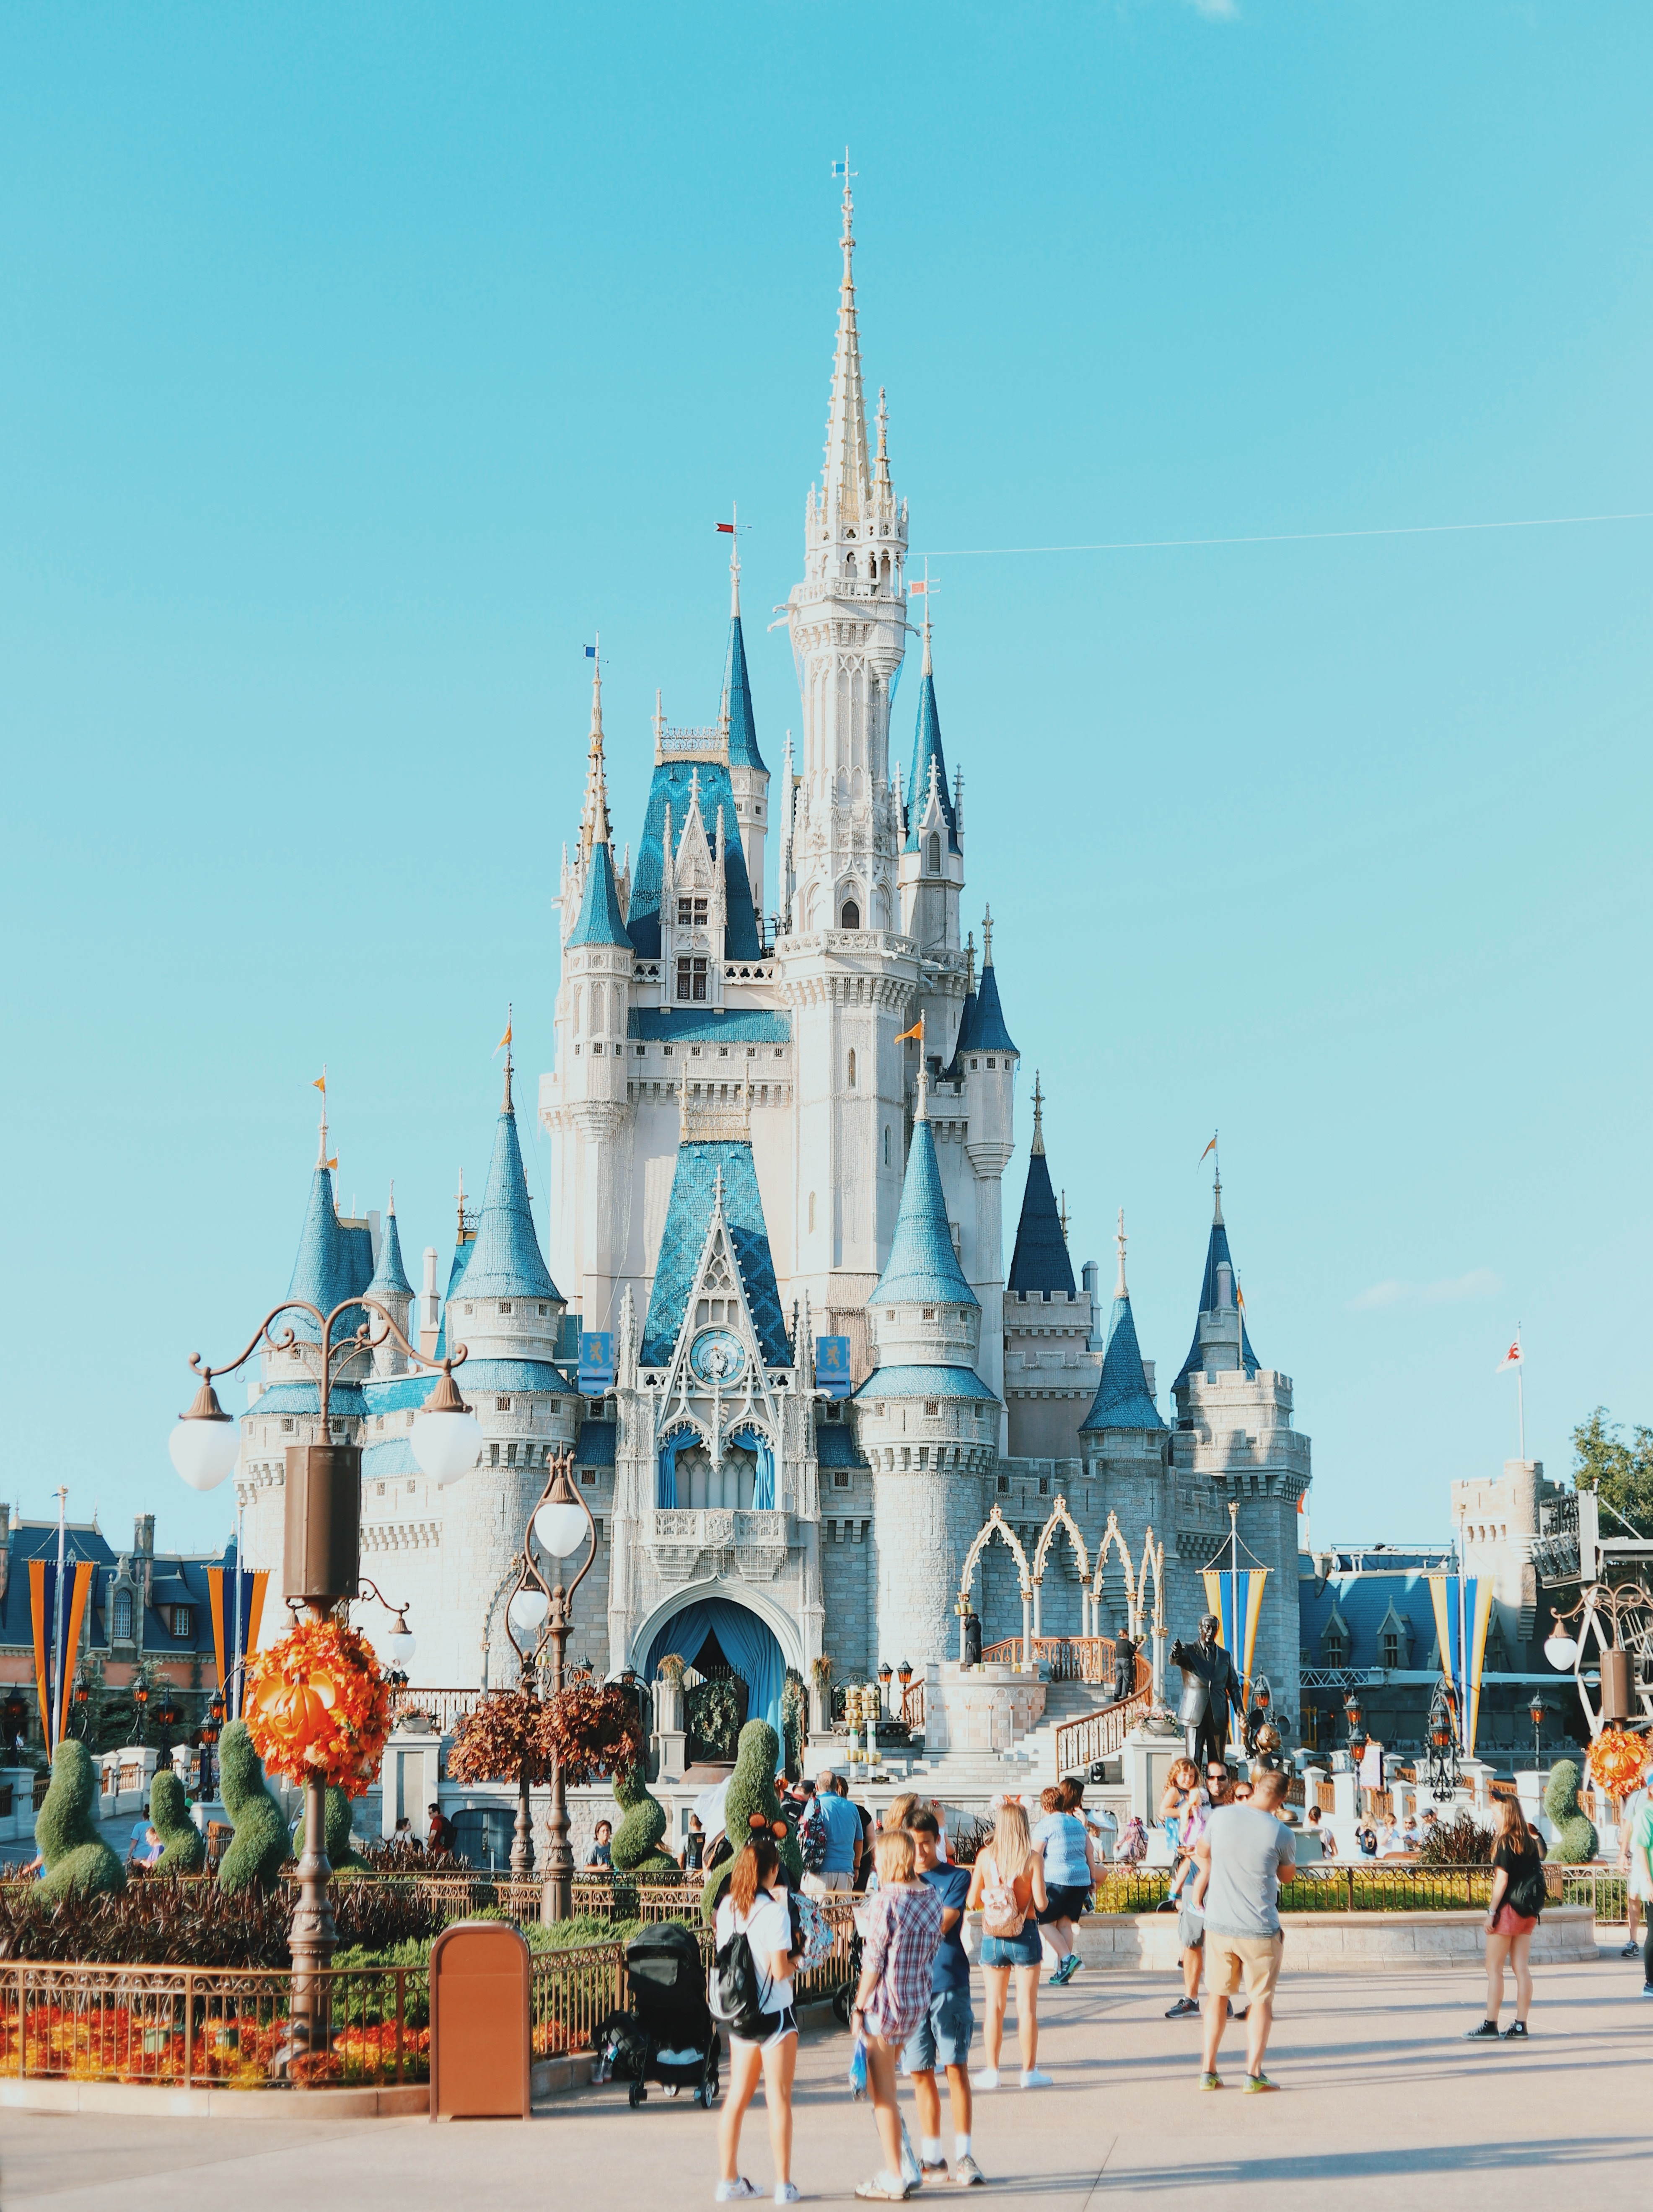 7 Tips to Help You Save at Disney World